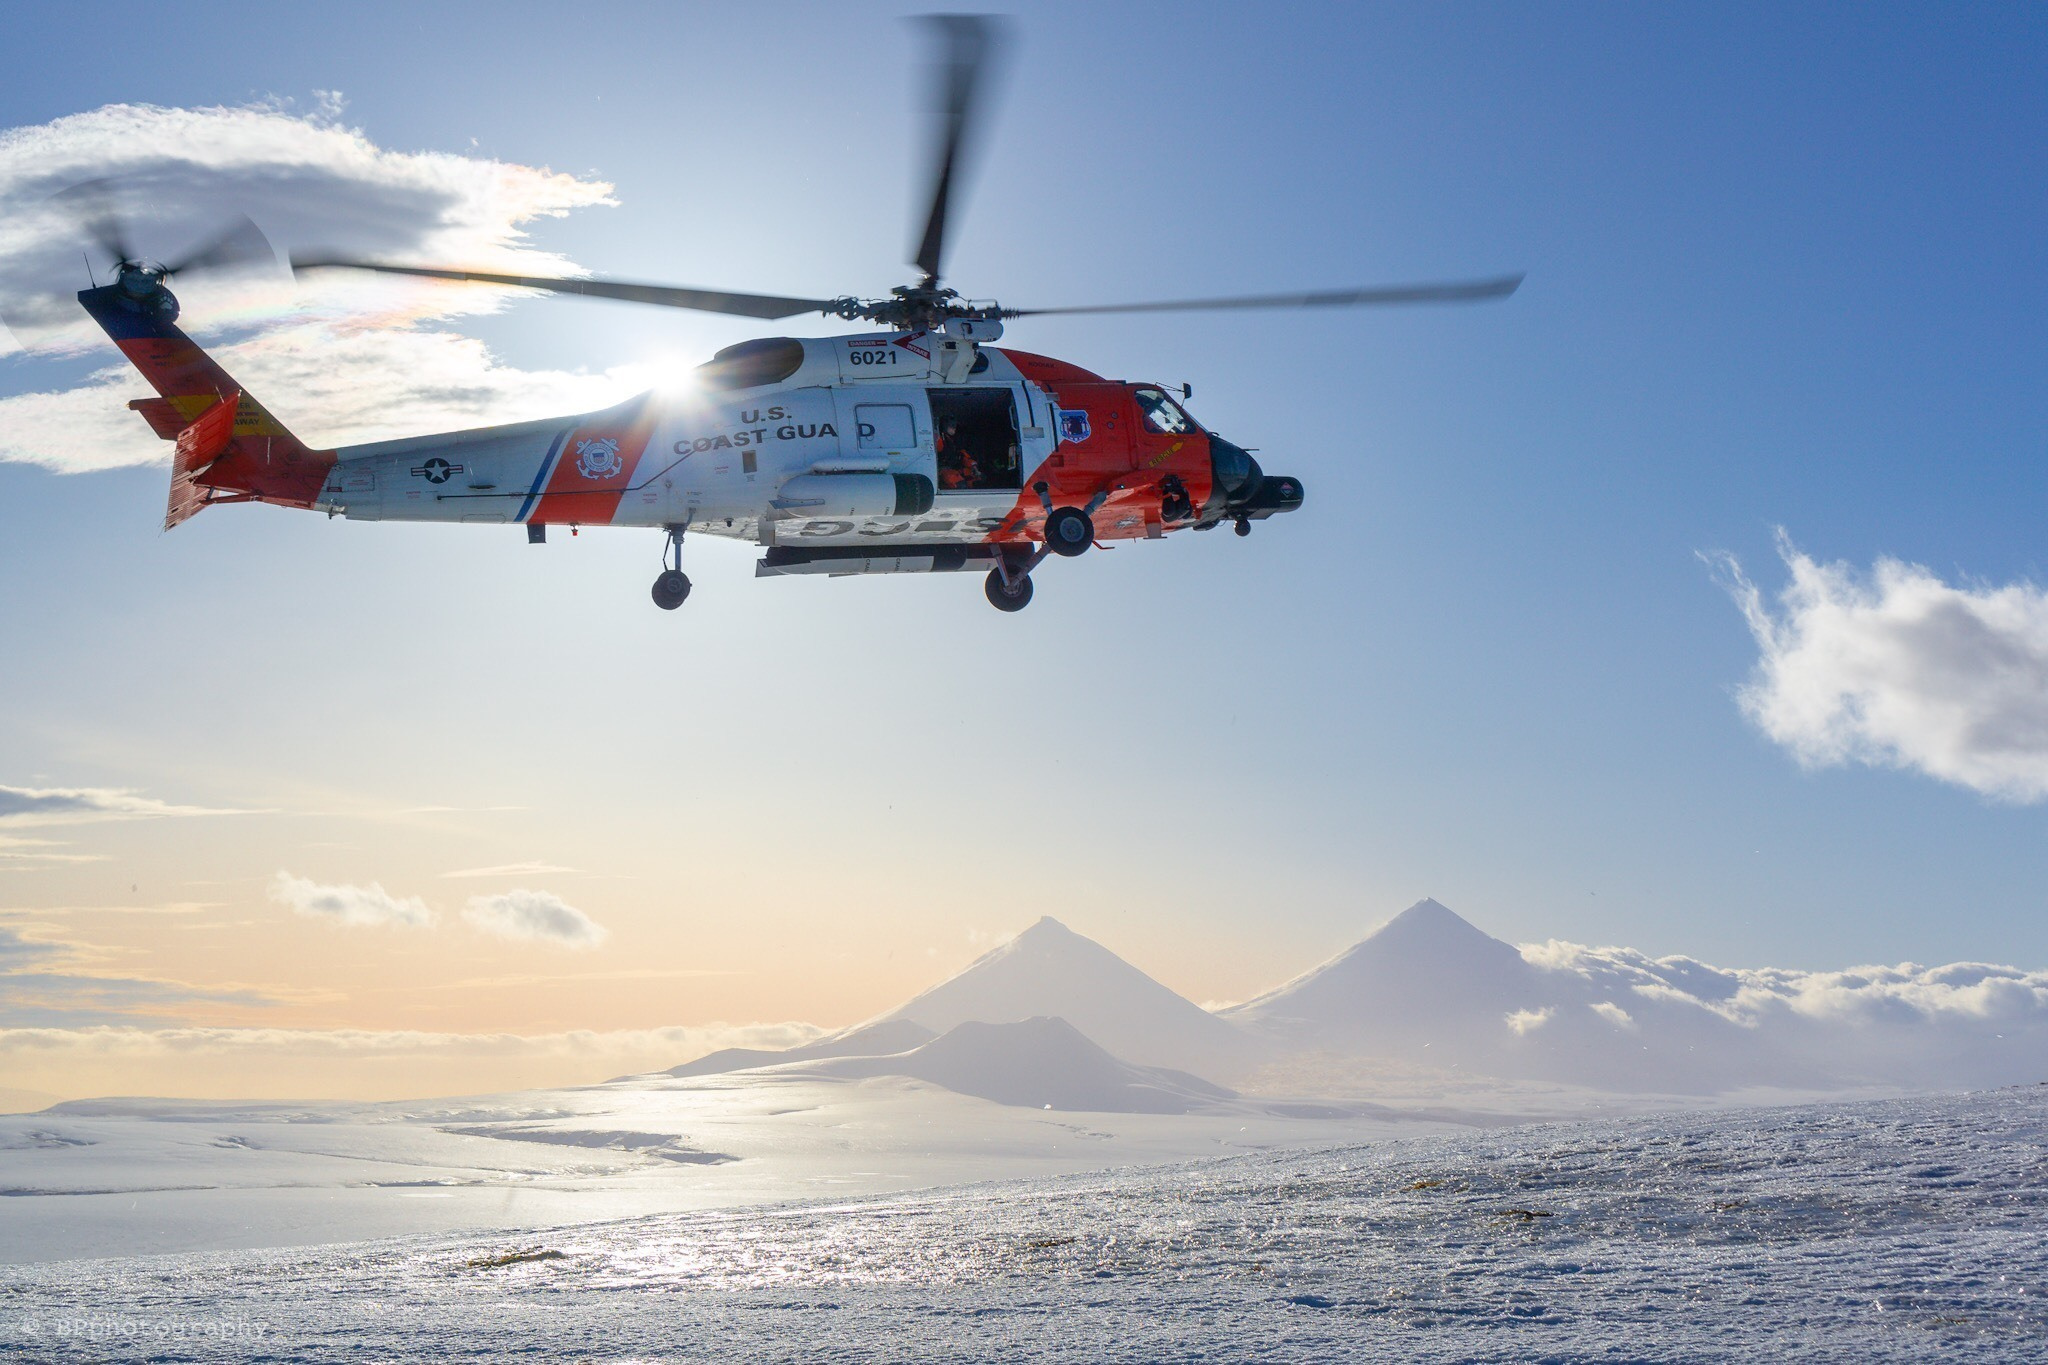 A U.S. Coast Guard MH-60 Jayhawk helicopter assigned to Air Station Kodiak flies over an active volcano near Cold Bay, Alaska, Feb. 7, 2019. (Petty Officer 1st Class Bradley Pigage/Coast Guard)